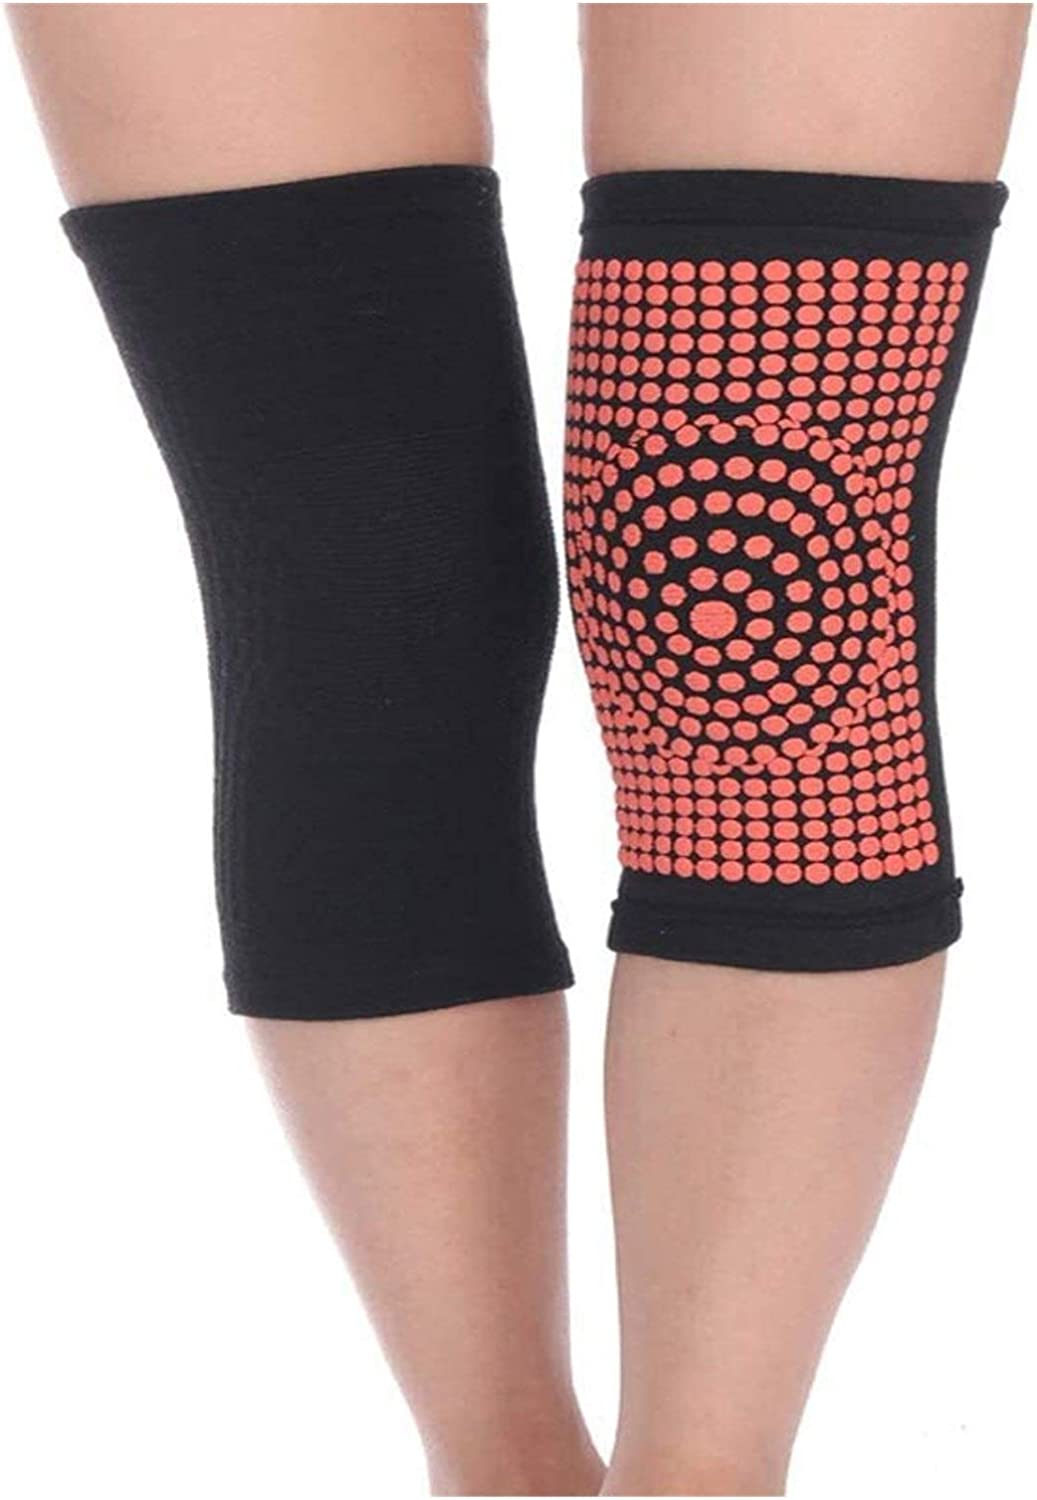 yxx Magnetic Attention brand Self-Heating 5 ☆ popular Knee Pads Knitting Cold Protection He